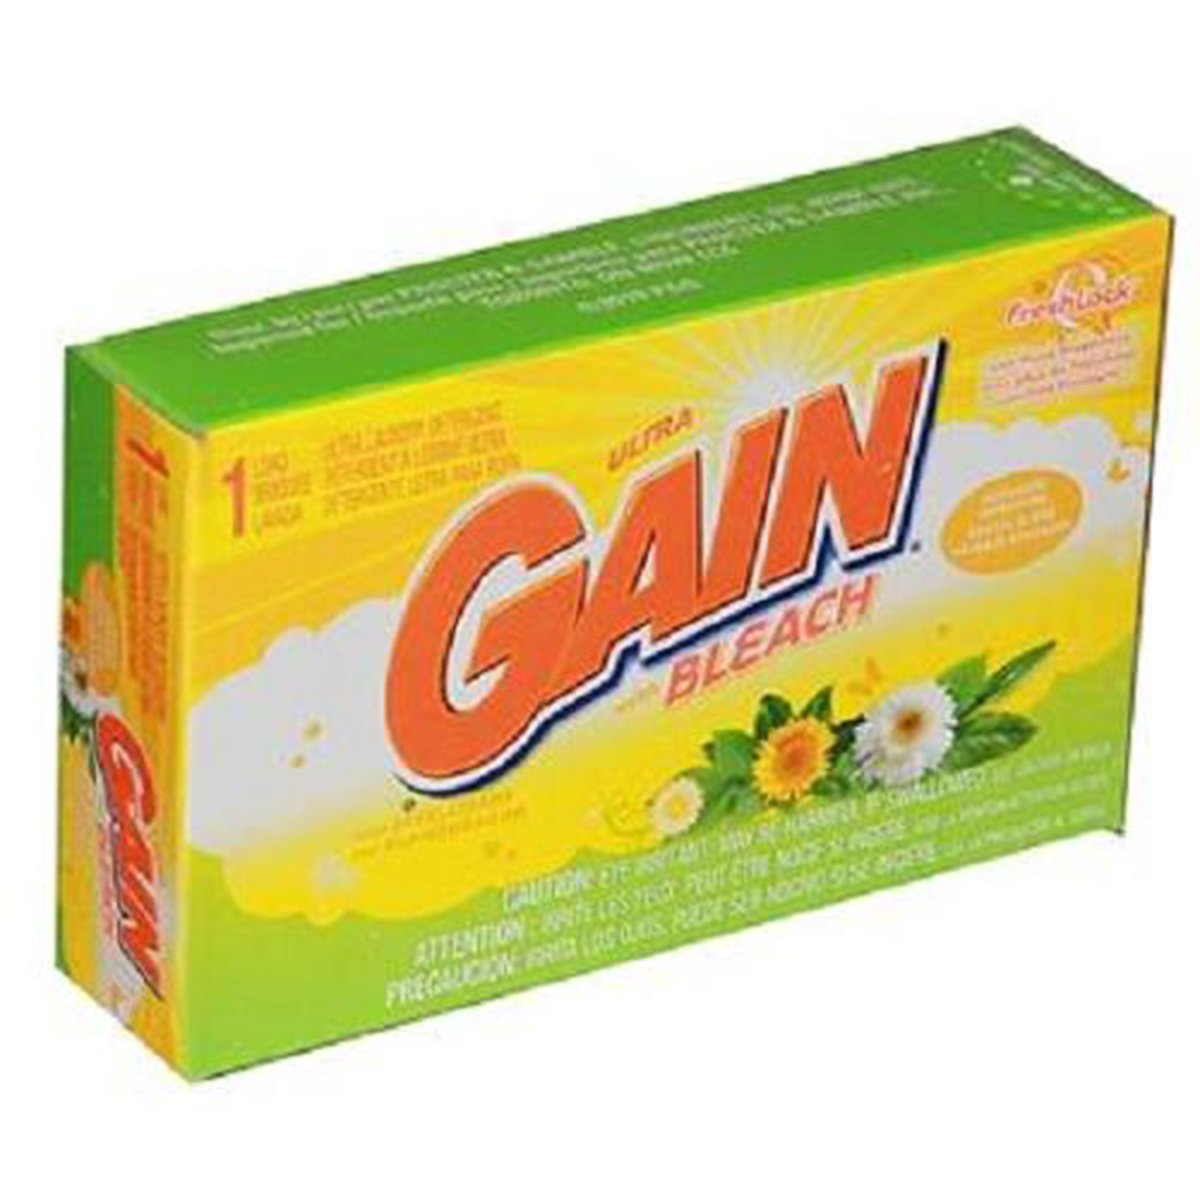 Amazon.com : Gain Ultra Bleach Laundry Detergent 1 Load Powder, 1 Count (LAUNDRY DETERGENT -POWDER/SOAP) : Grocery & Gourmet Food